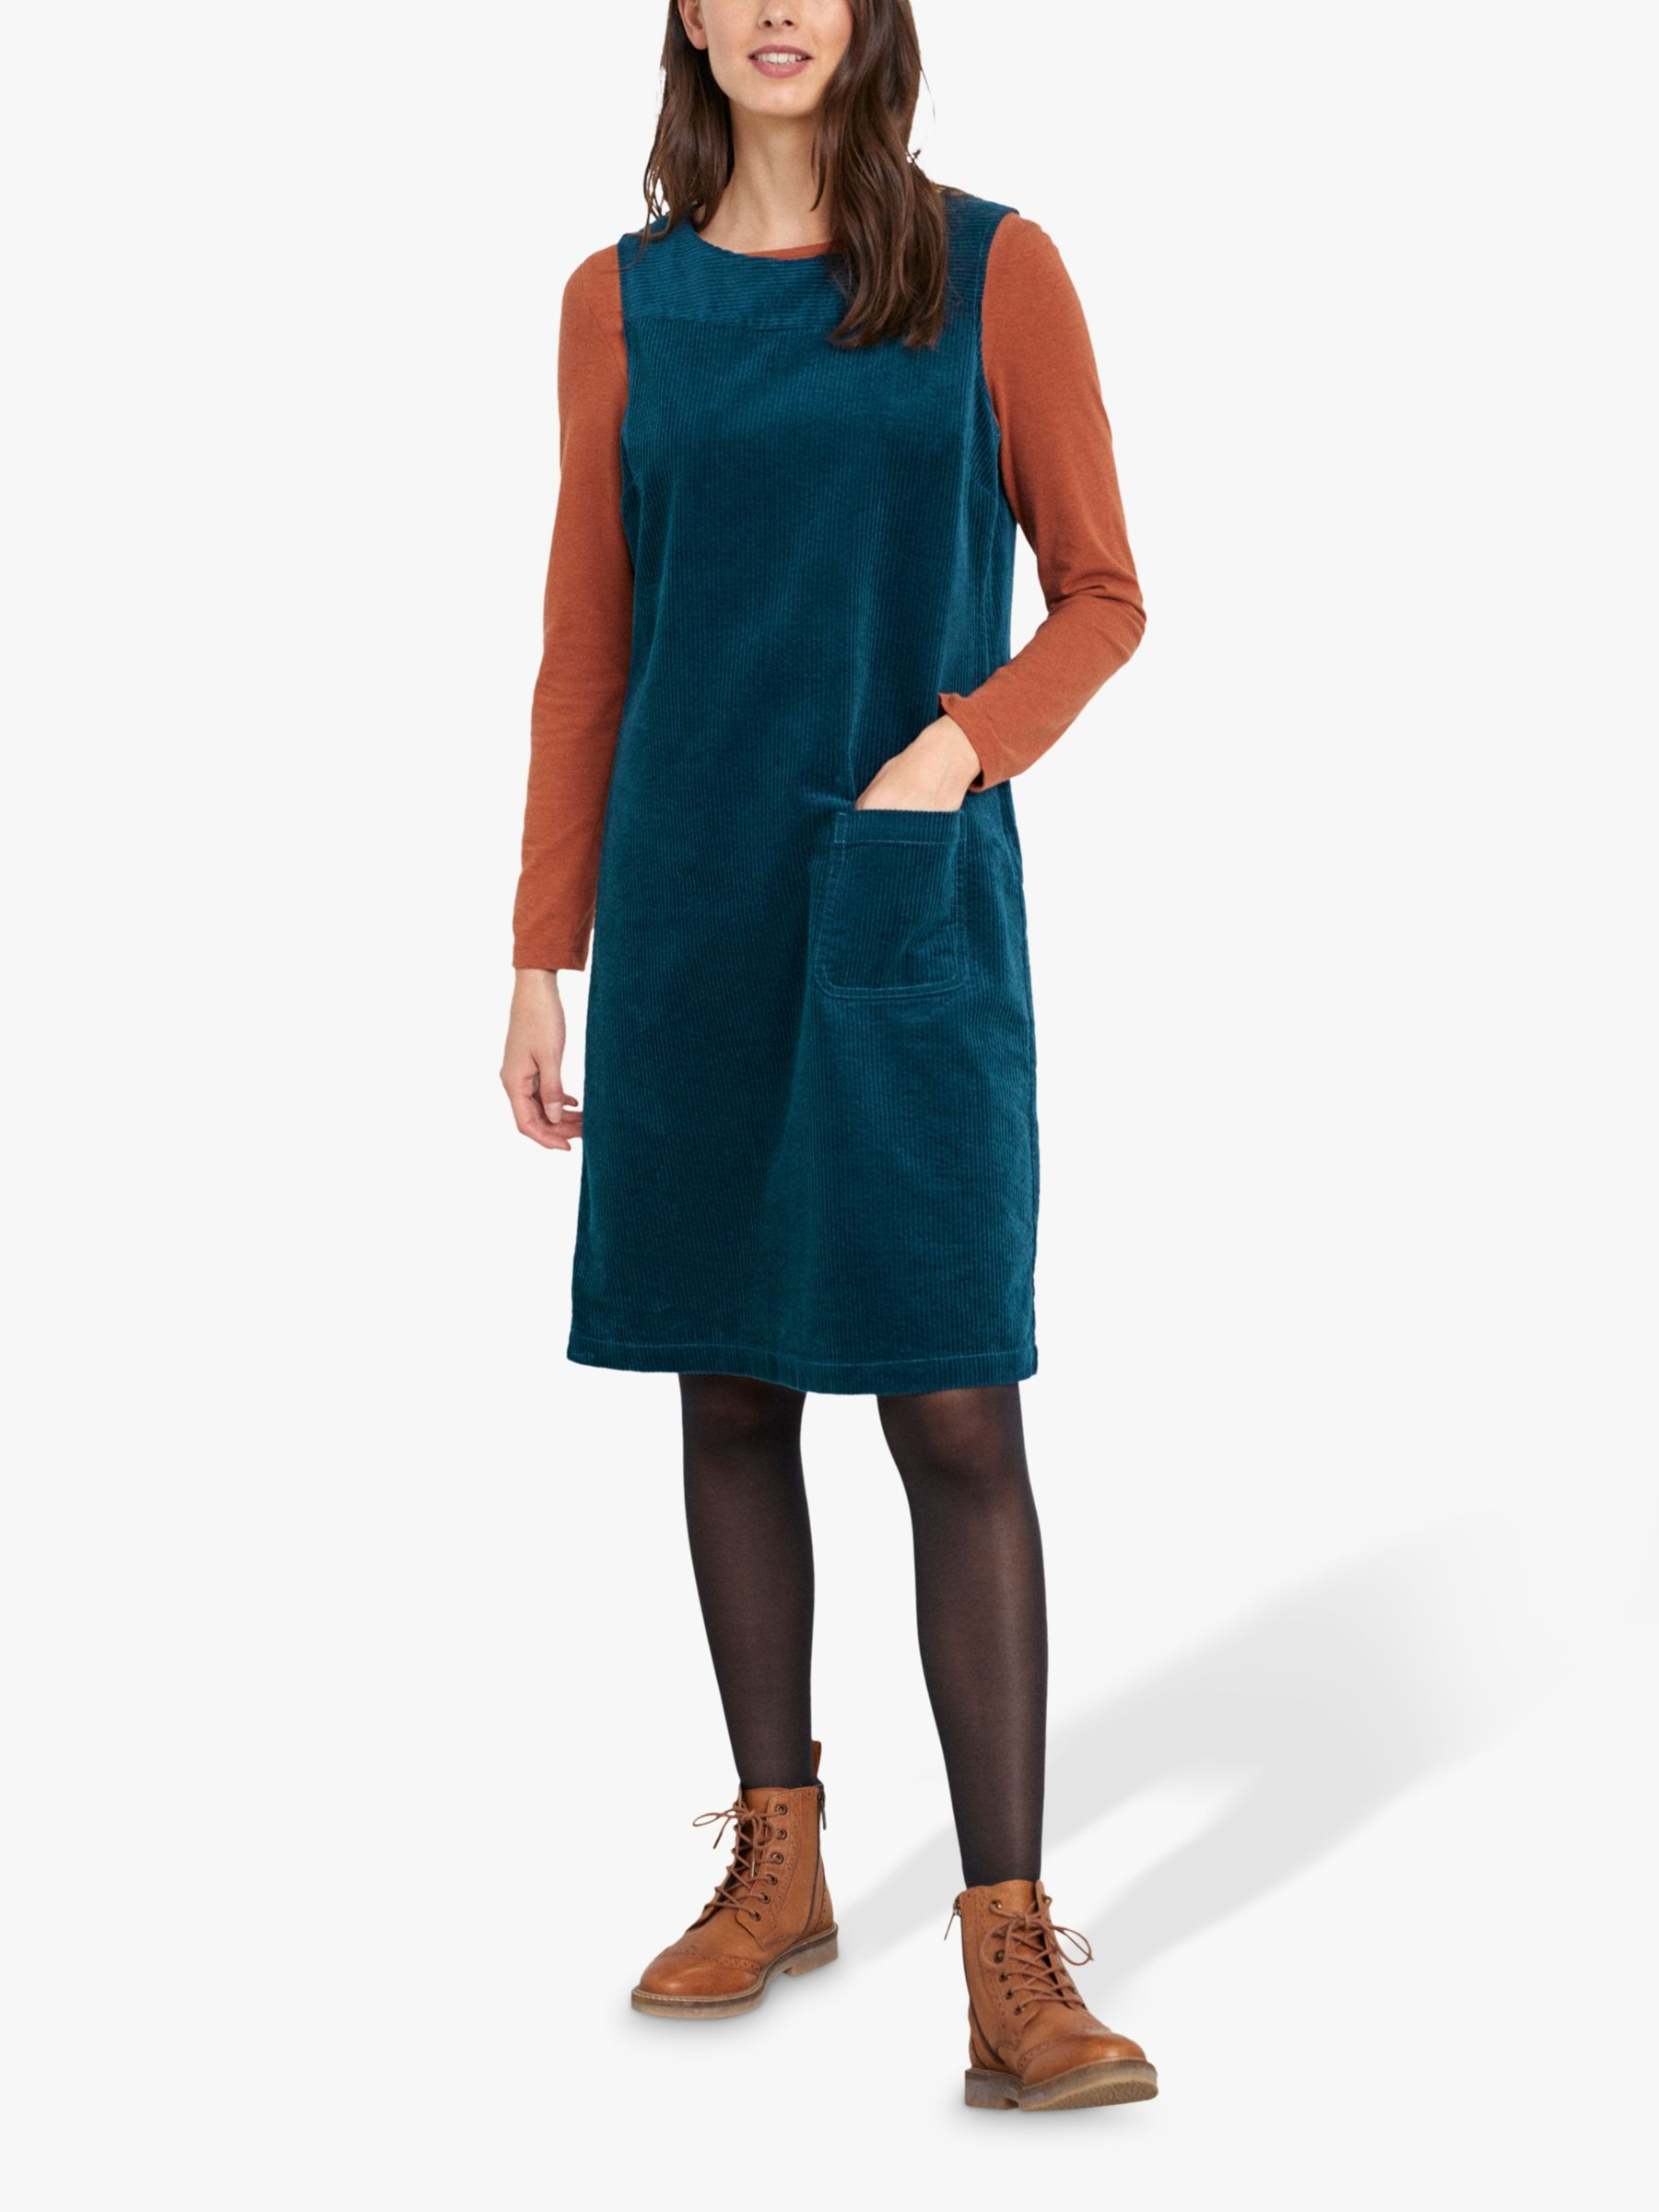 A studiowear-inspired women's pinafore dress in chunky cord fabric, this knee-length style is perfect for layering. Finished with a scoop neck and patch pocket, wear yours over a striped jersey and team with boots.